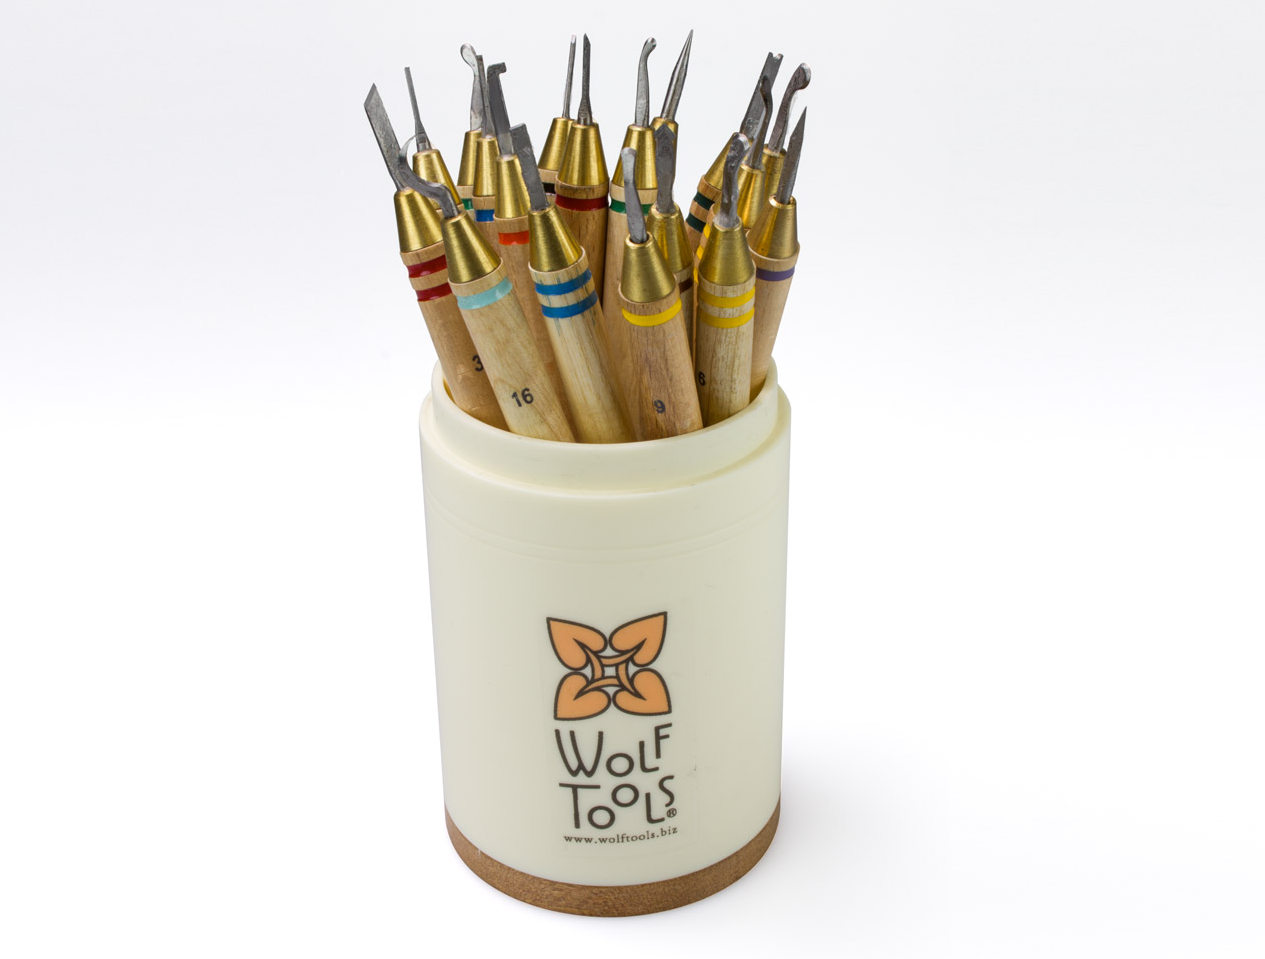 wolf carving wax tools